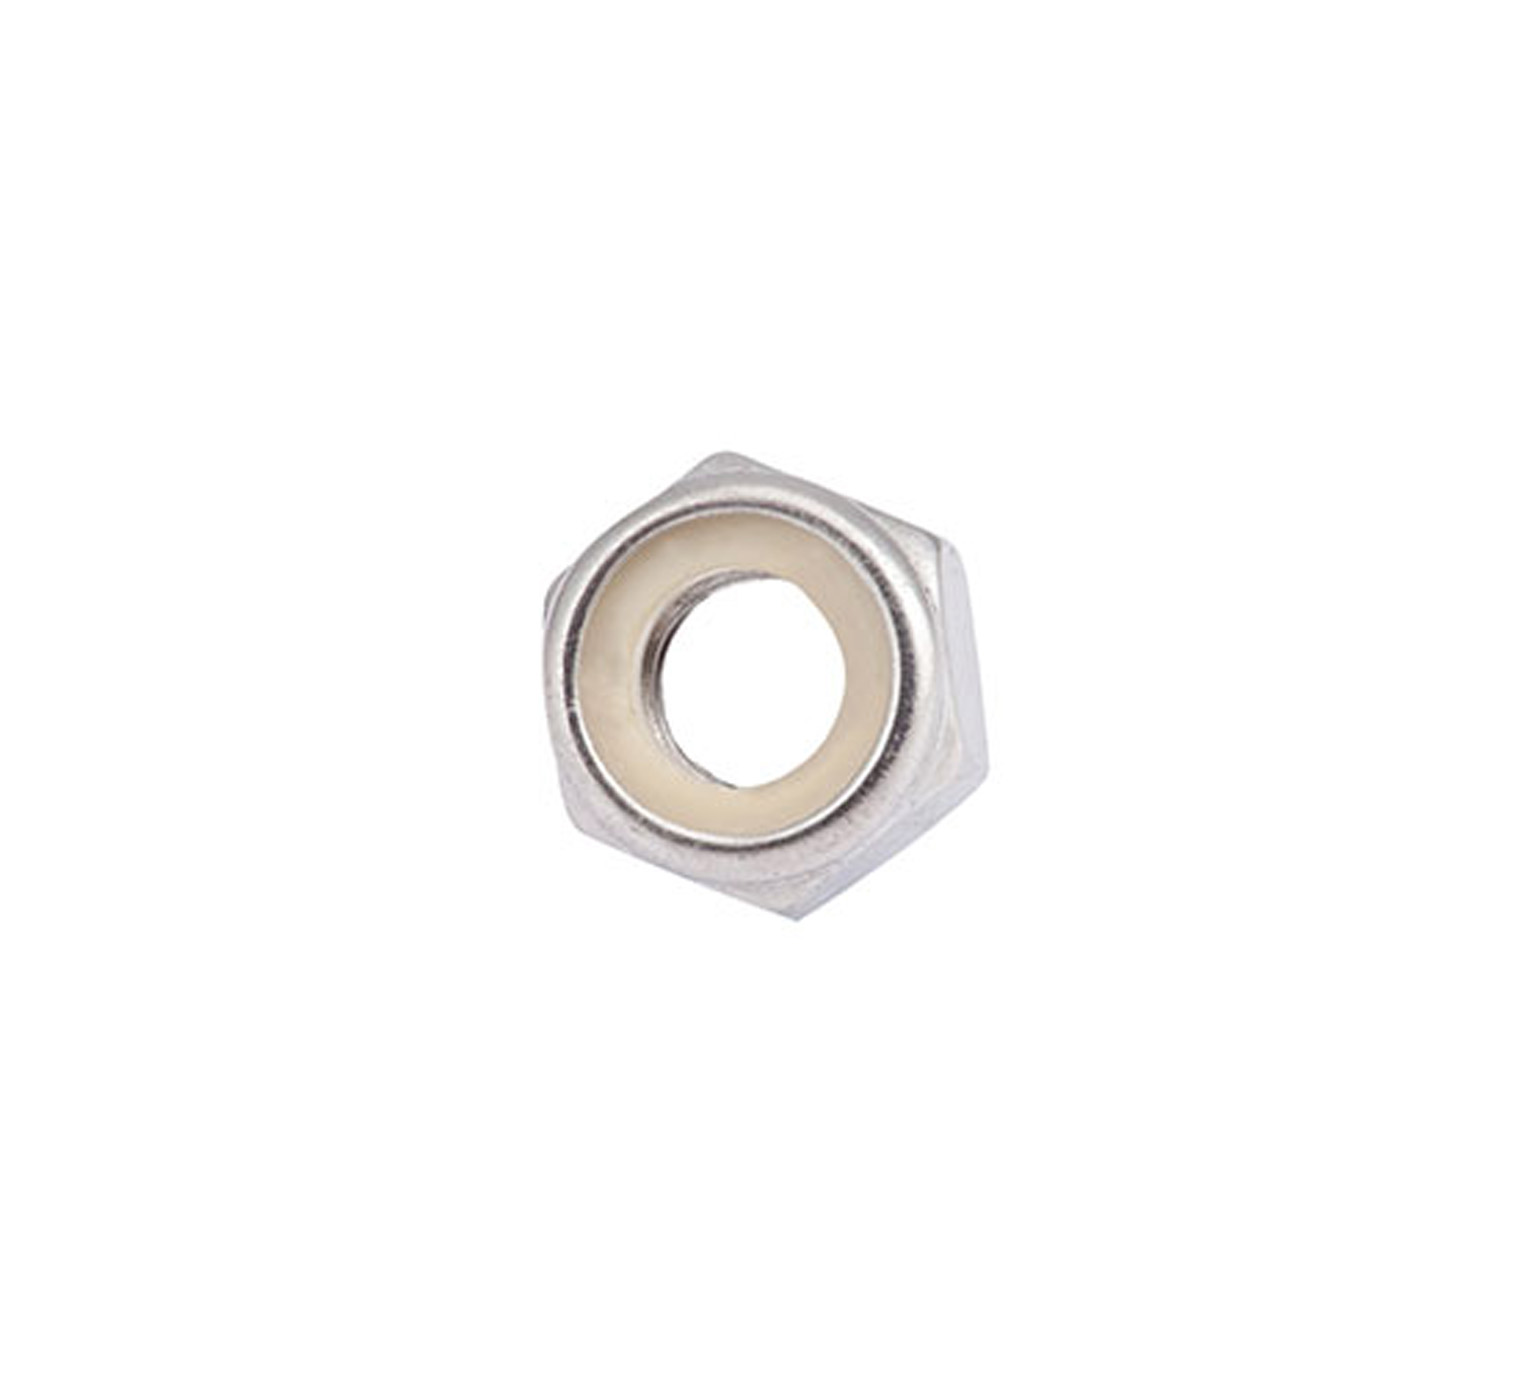 08714 Stainless Steel Hex Lock Nut - M10 Thread x 0.393 in alt 1